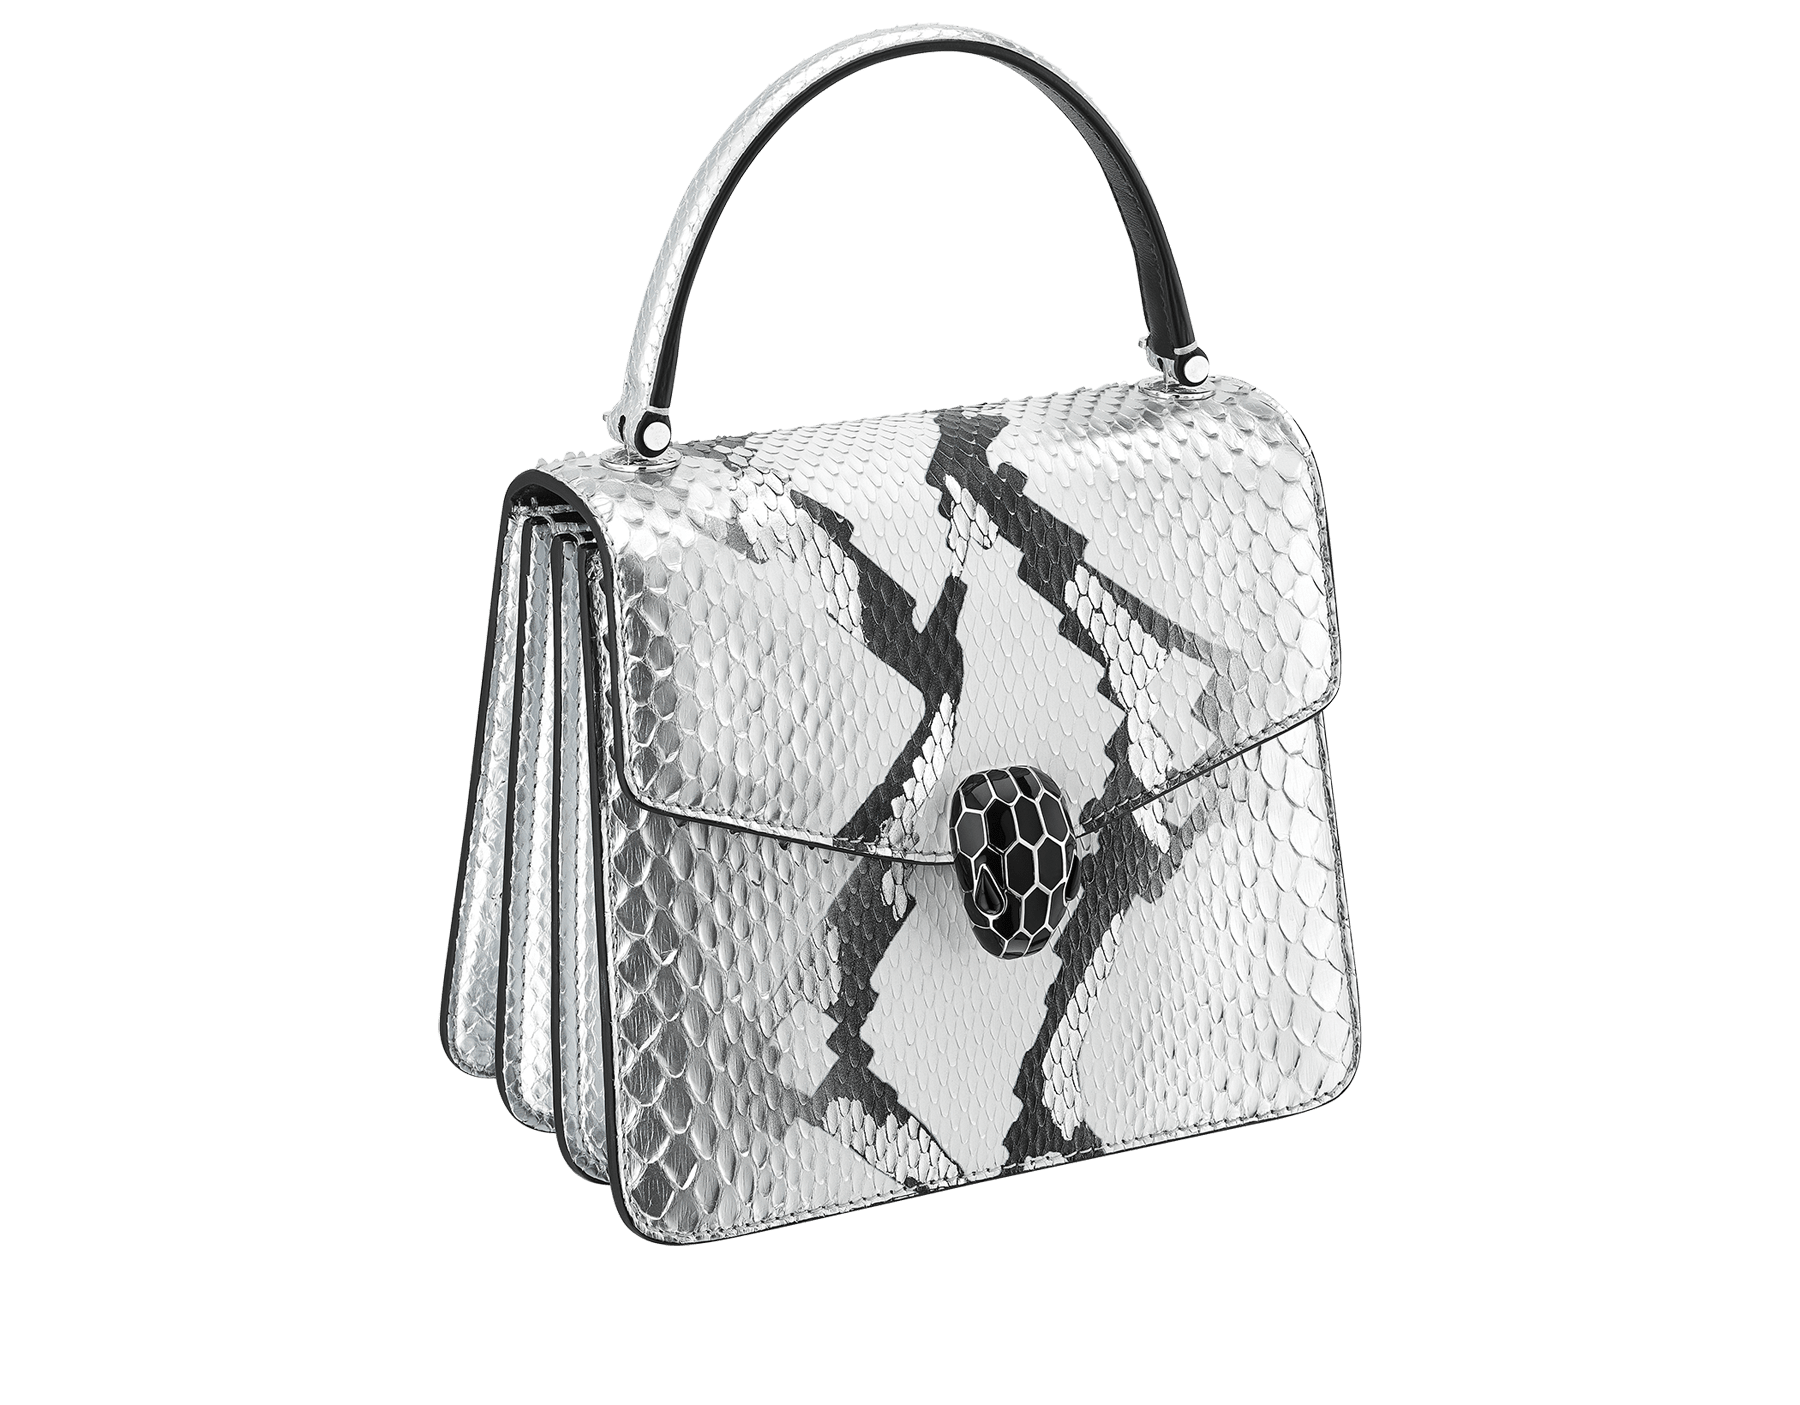 Serpenti Forever crossbody bag in black and white python skin with Whitethunder motif. Snakehead closure in shiny palladium plated brass decorated with black enamel, and black onyx eyes. 752-Pa image 2